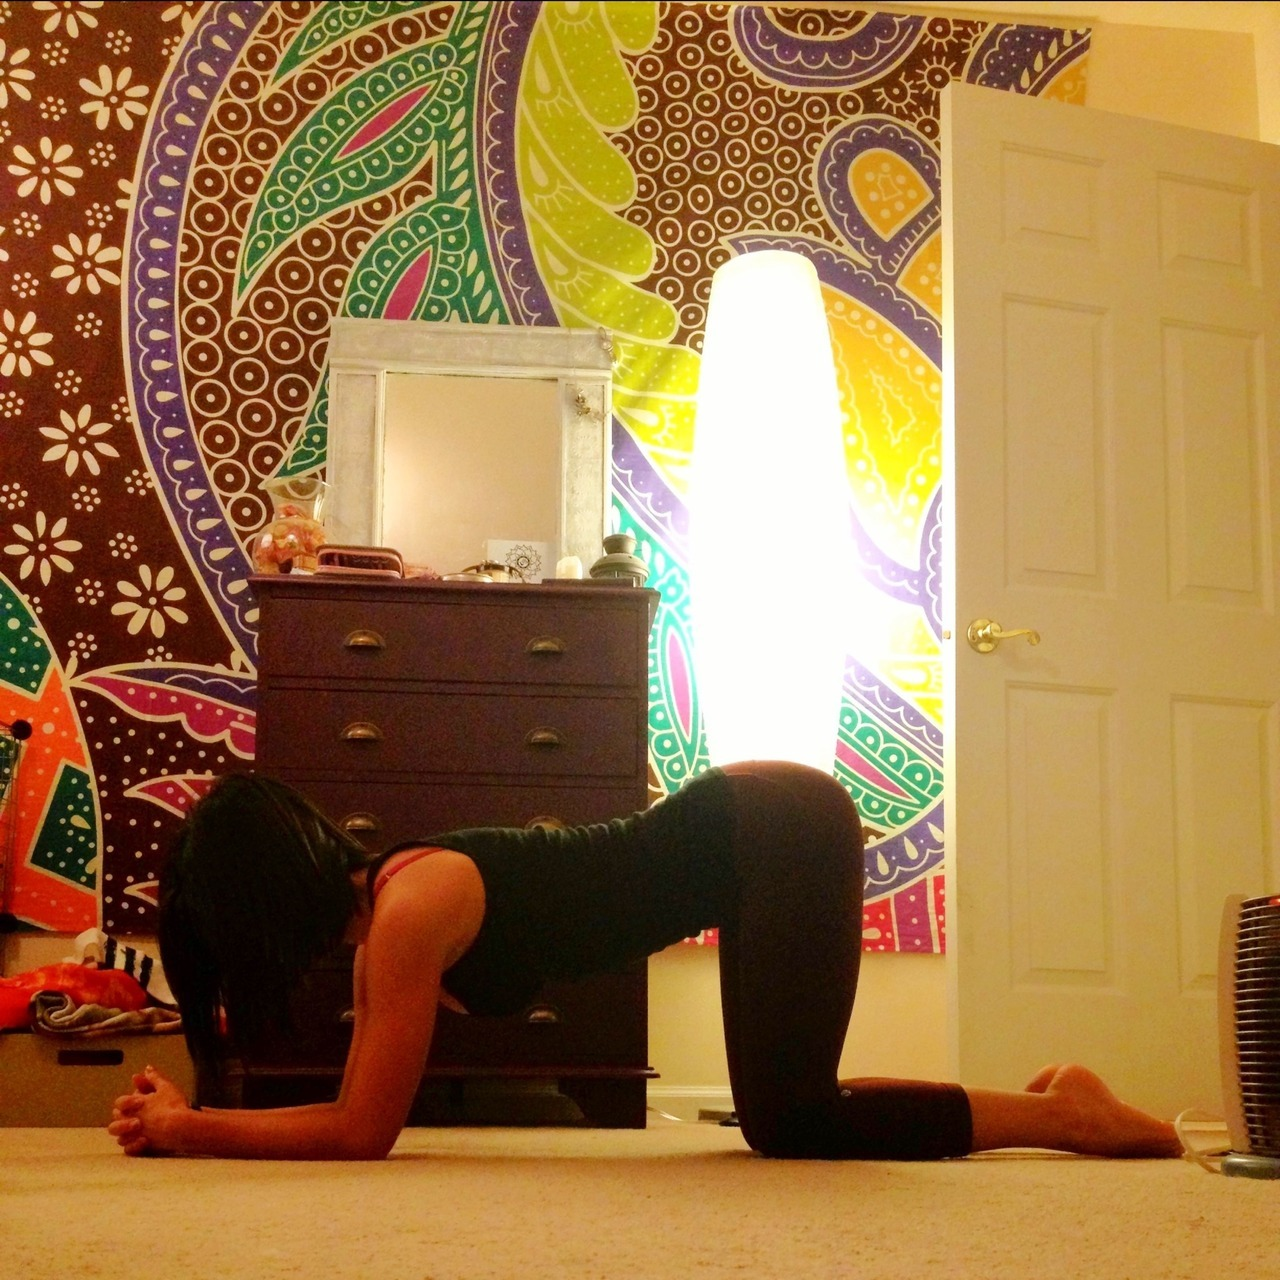 upinthe-air:  As requested, a headstand step by step!  This is how I learned and its the first inversion I learned (besides shoulder stand). First things first, make sure your elbows are shoulder width apart, and the cup your head in your hands. You should be positioned on the crown of your head, but your weight will be supported on your arms. Once you're comfortable, push into downward dog and walk your toes as close to your elbows as possible. You can spend a couple breaths here. Bringing one knee in at a time, with a teeny tiny kick, lift yourself into a little pod. I used to stay here for as long as possible while I was learning so I could get used to balancing. When you're ready, begin straightening the legs. Make sure you stack ankles on top of hips on top of shoulders. It helps to tuck the tailbone in. This will also help with the balance. As you get stronger in the posture you can then try lifting, instead of kicking, with straight legs right off the floor.